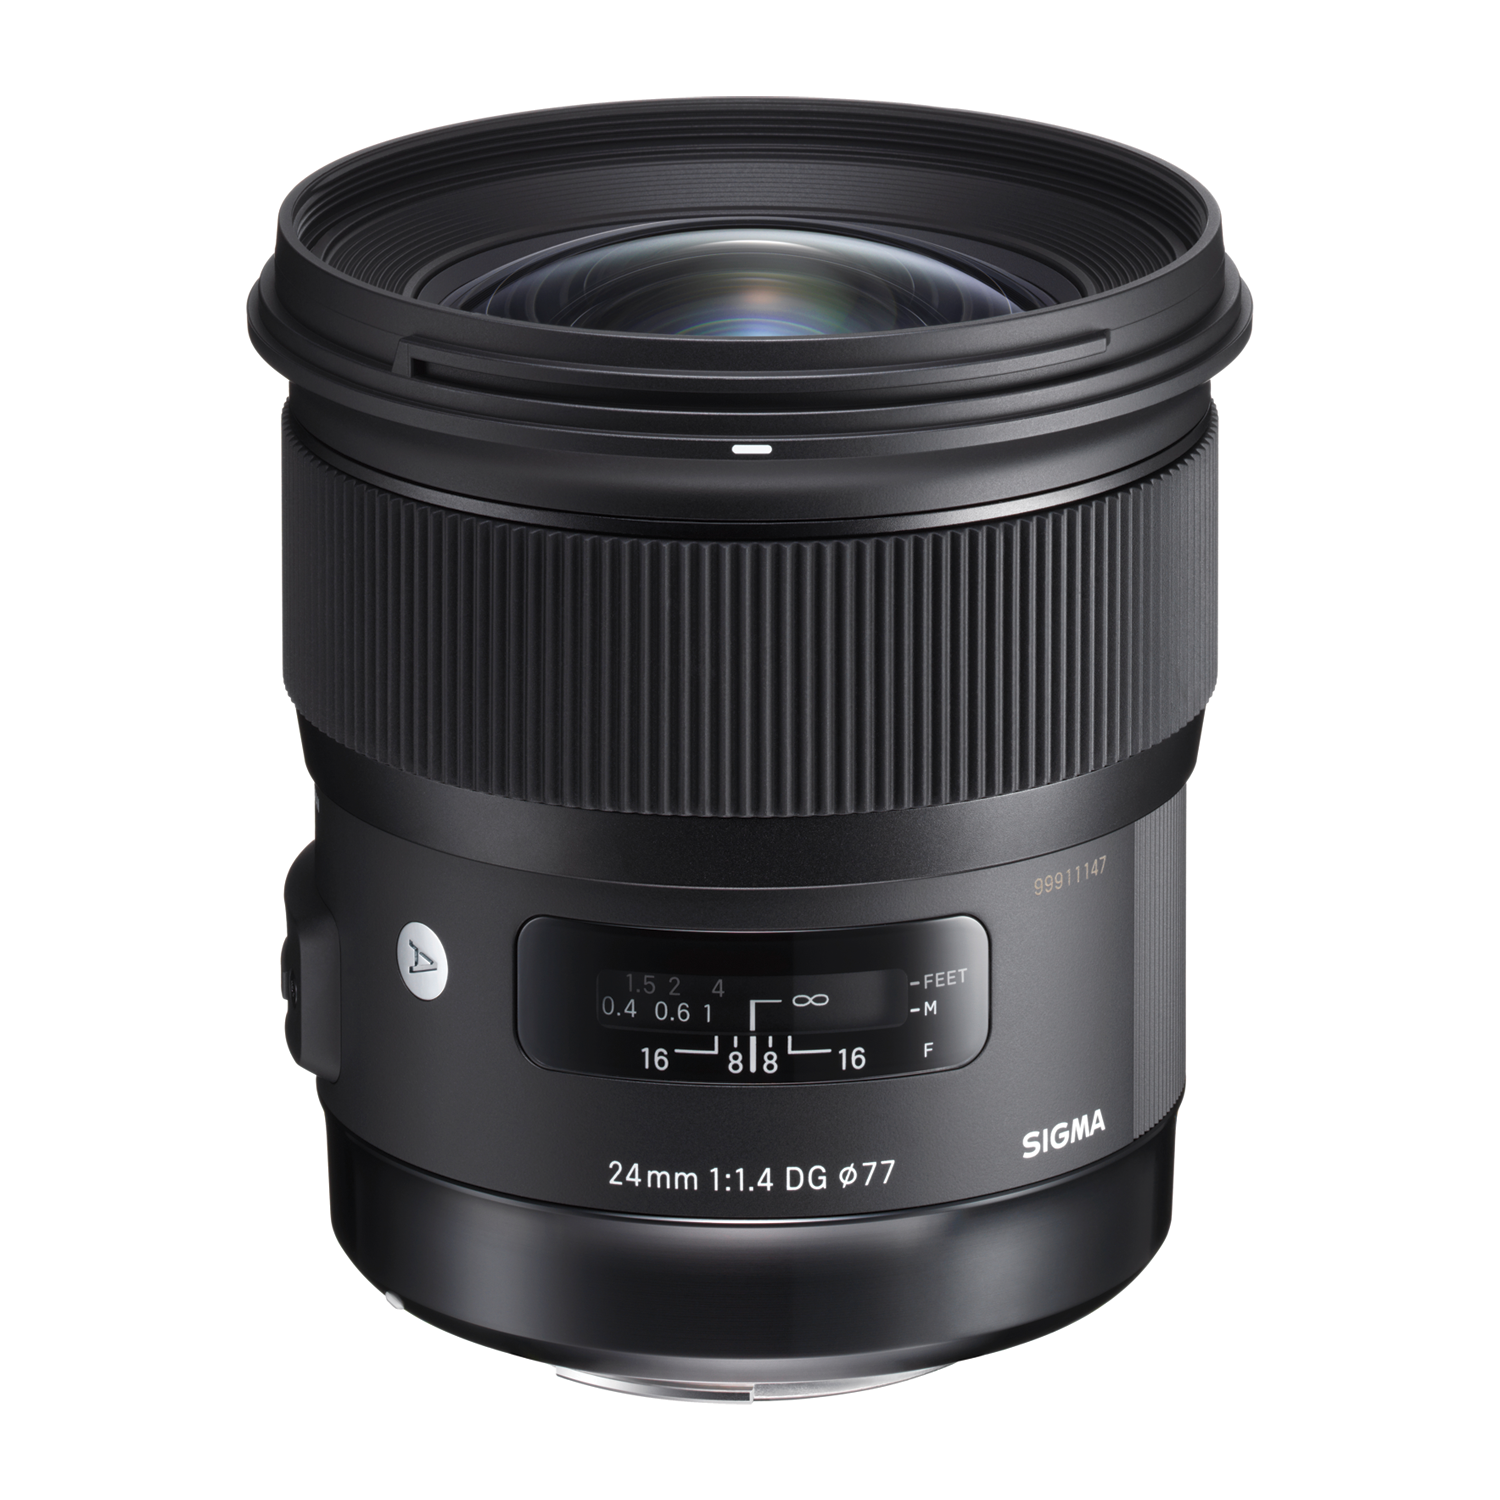 Sigma 24mm F1.4 DG HSM – ART Lens for Canon